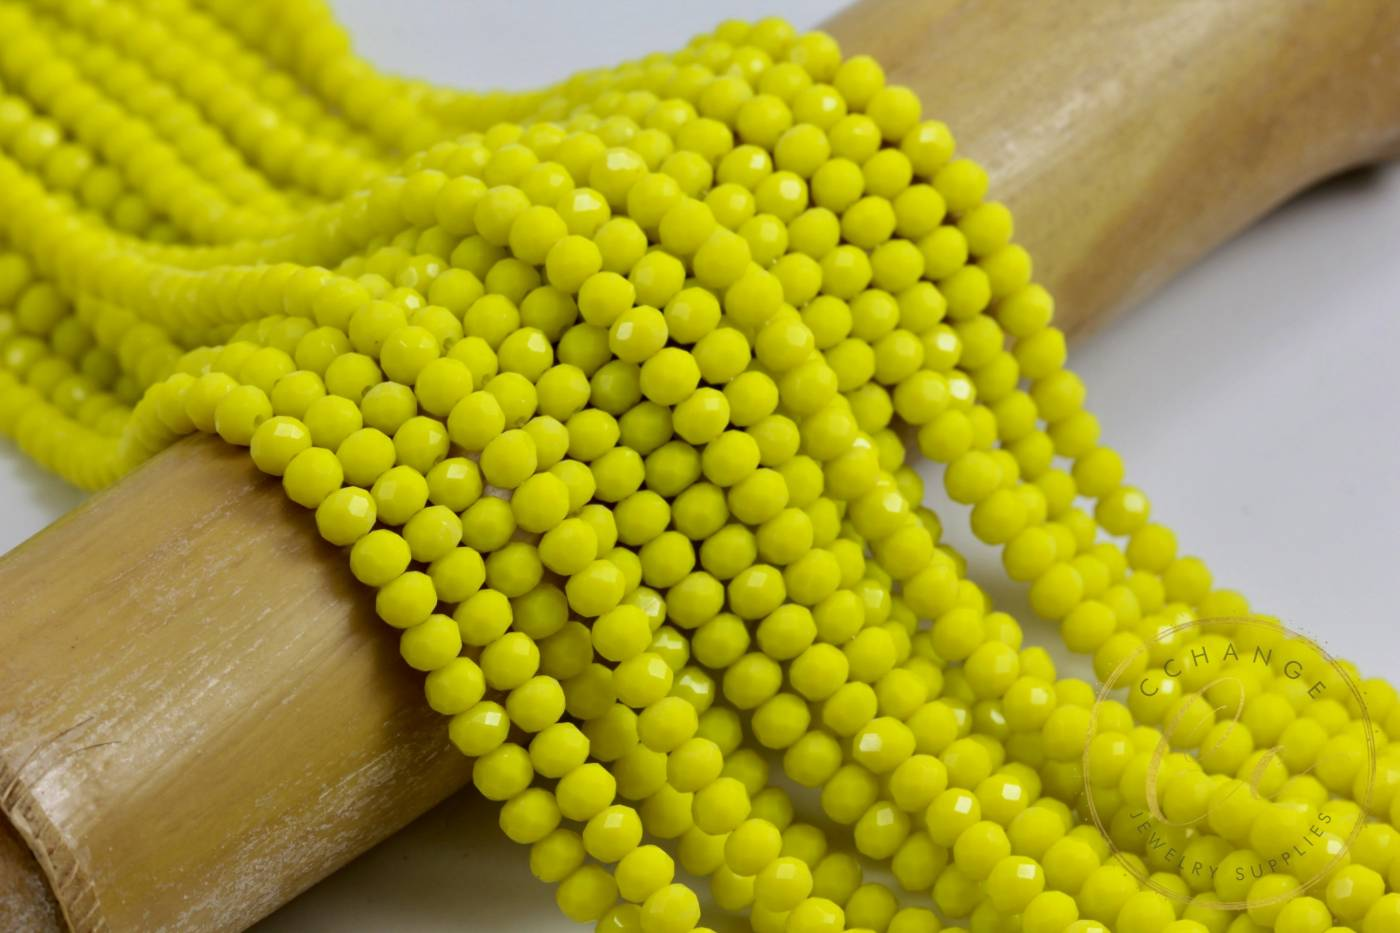 crystal-glass-beads-neon-yellow-colour.jpg